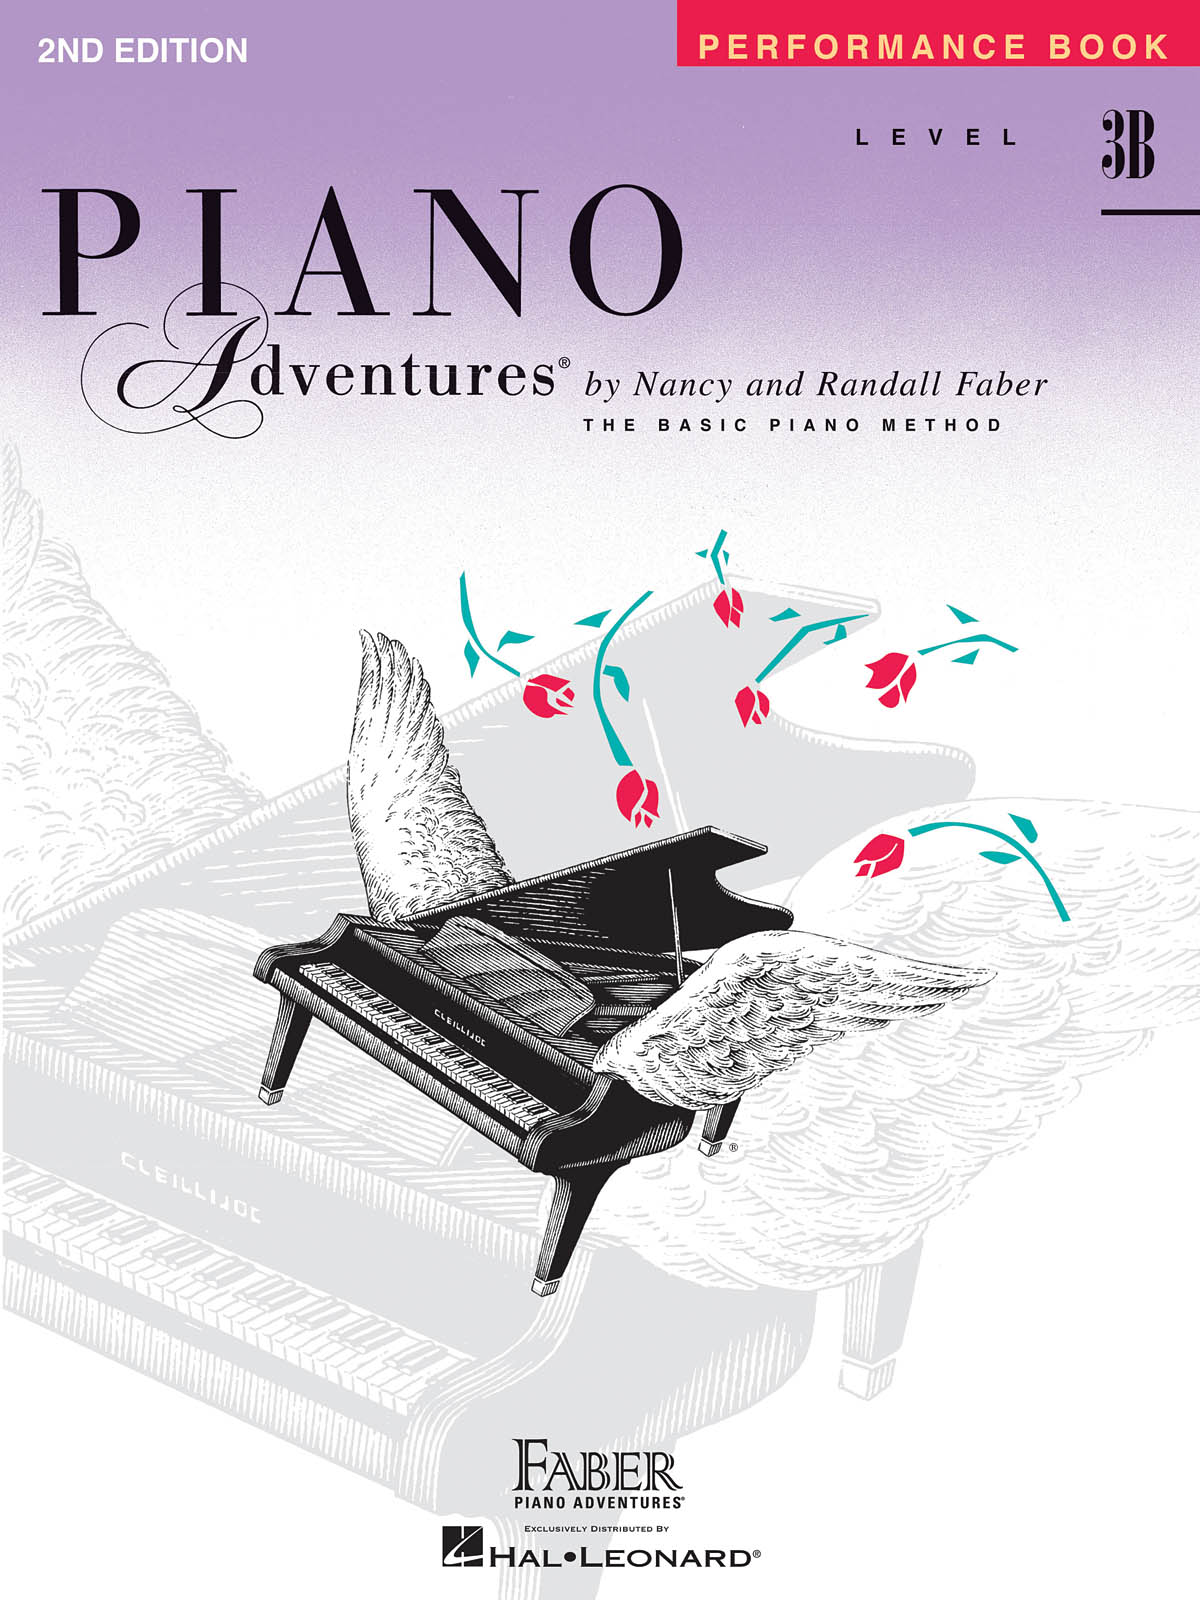 Faber Piano Adventures, Performance Book, Level 3B